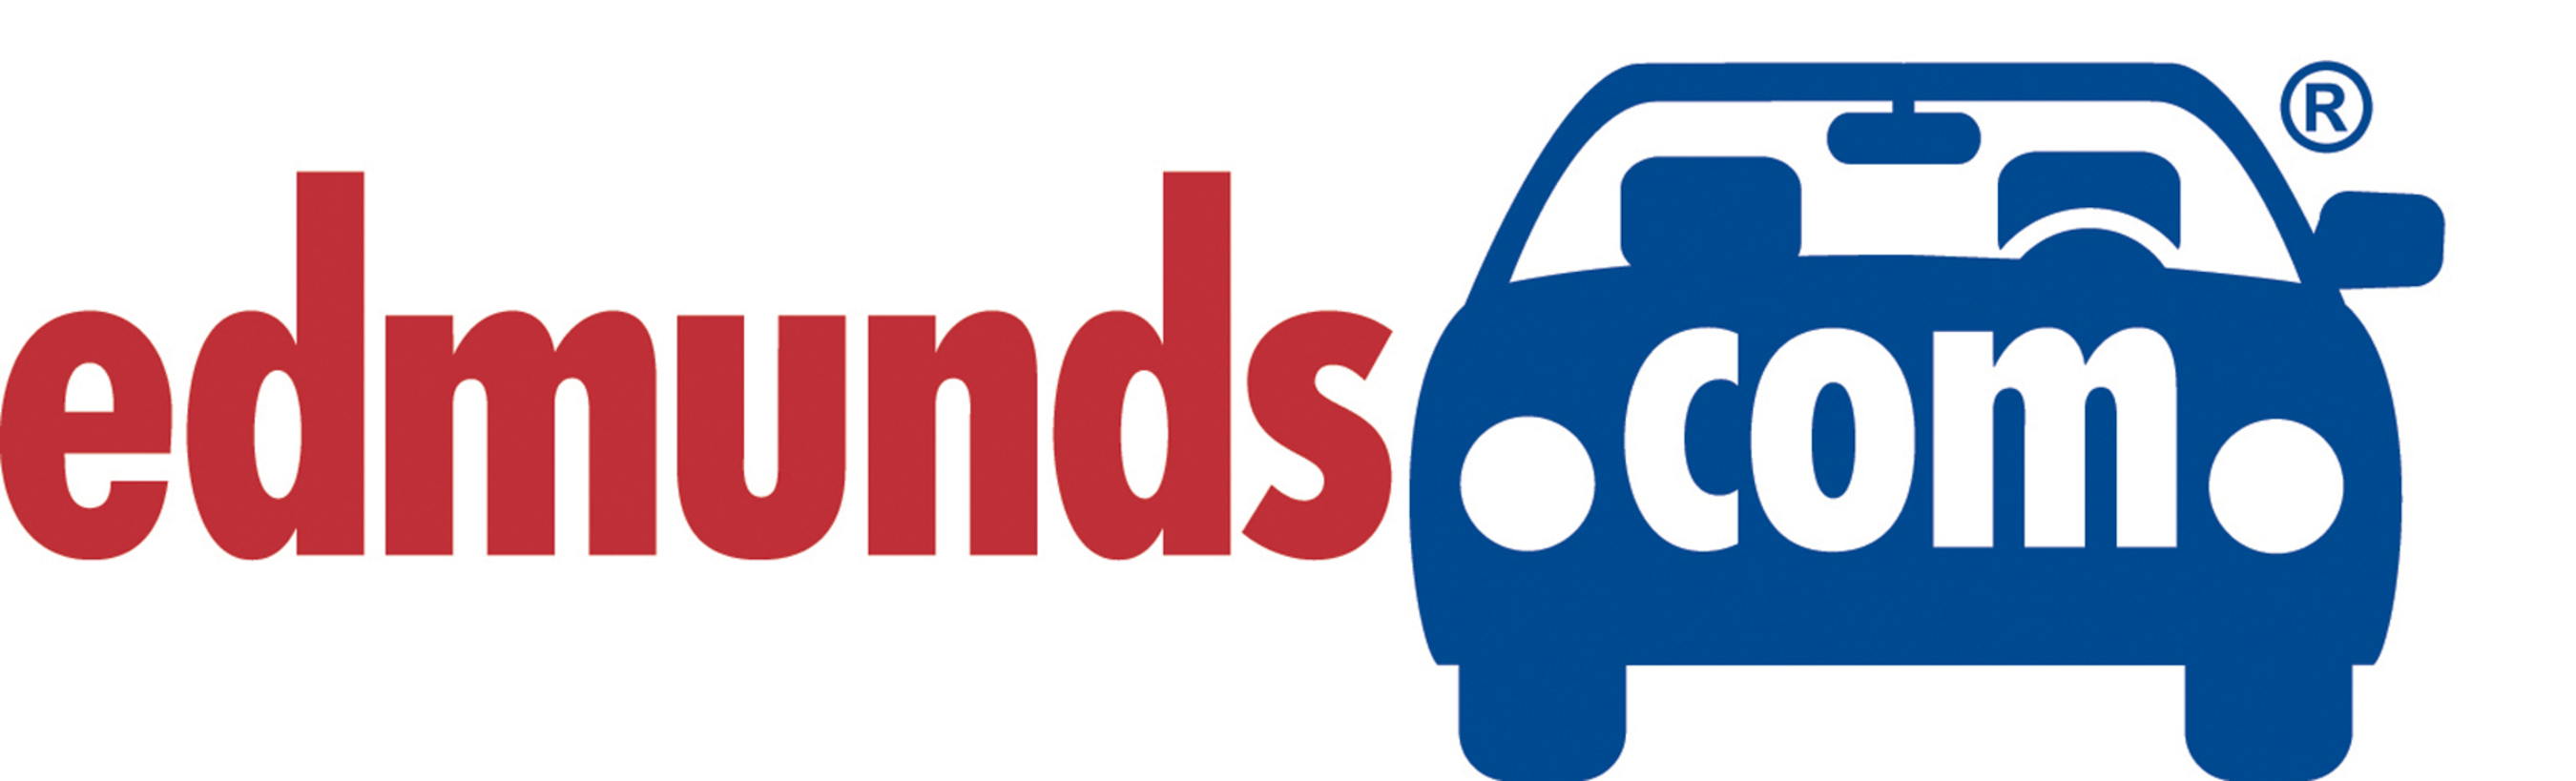 used car prices increase nearly eight percent to hit record high in q2 2015 says edmunds